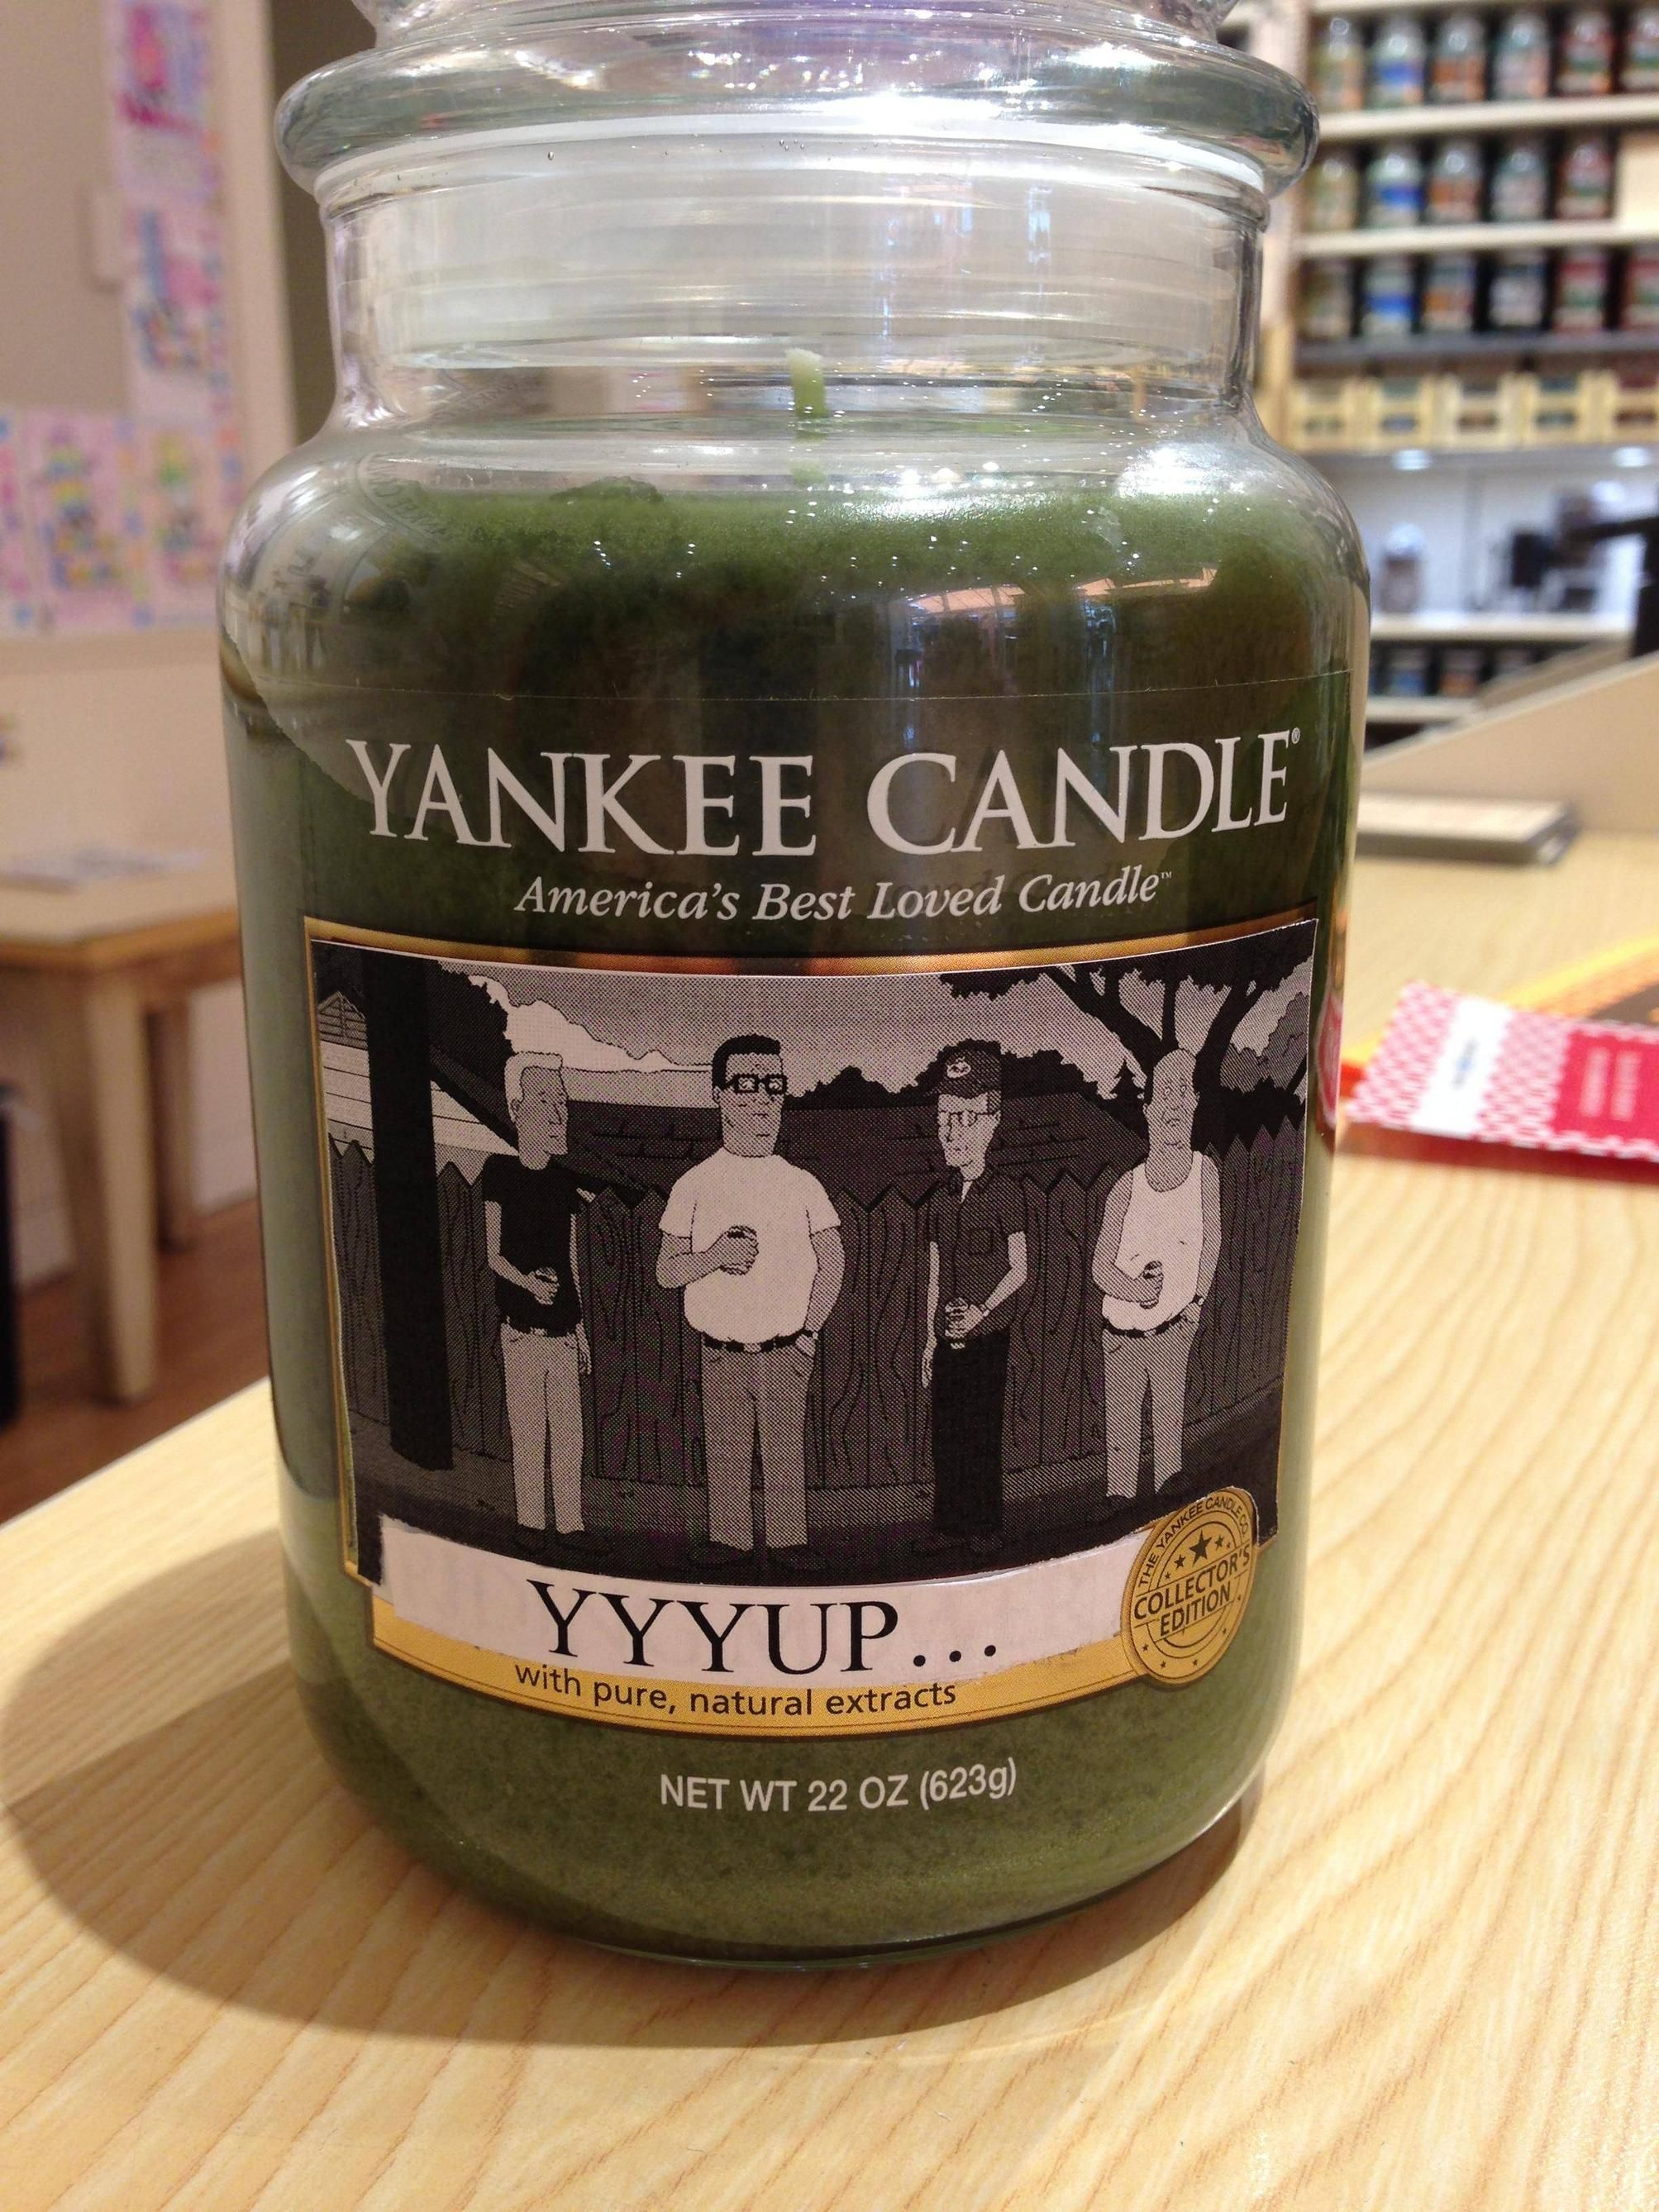 So my friend works at Yankee Candle... - Album on Imgur